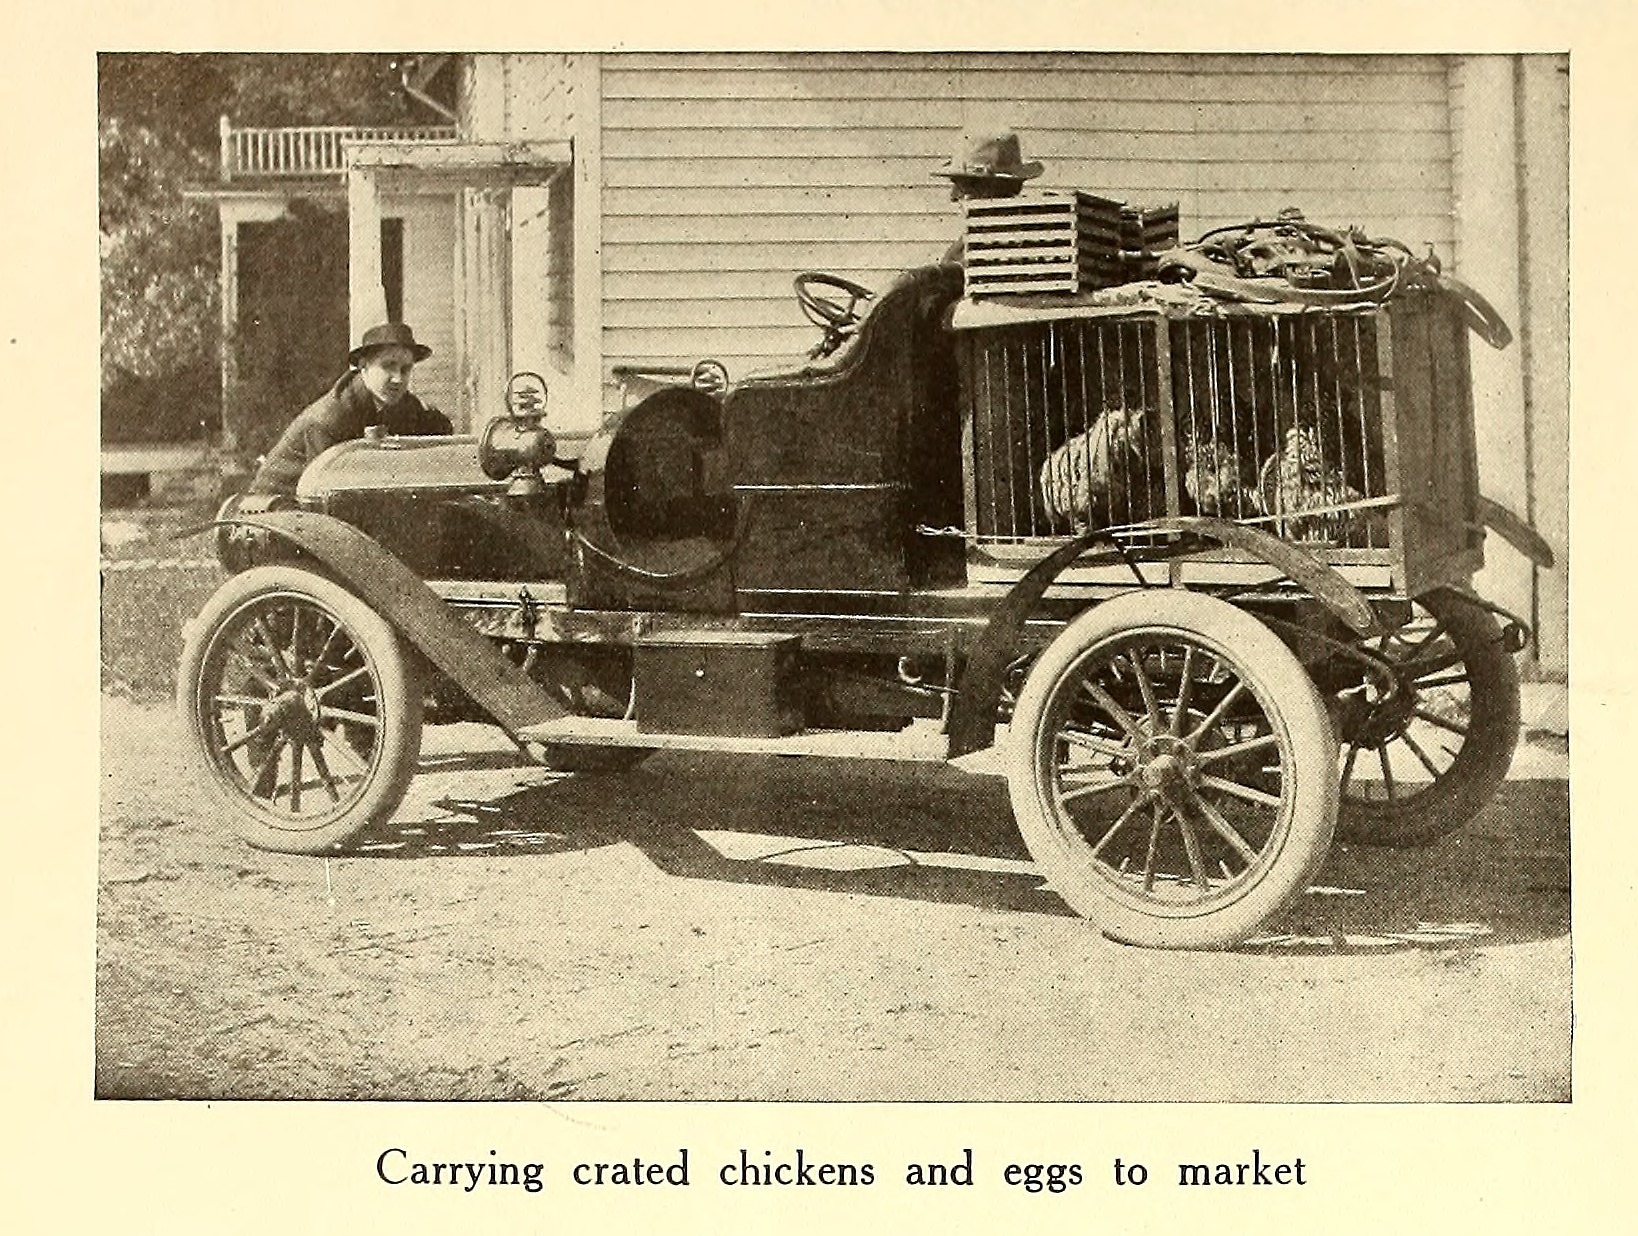 Carrying crated chickens and eggs to market from American homes and ...